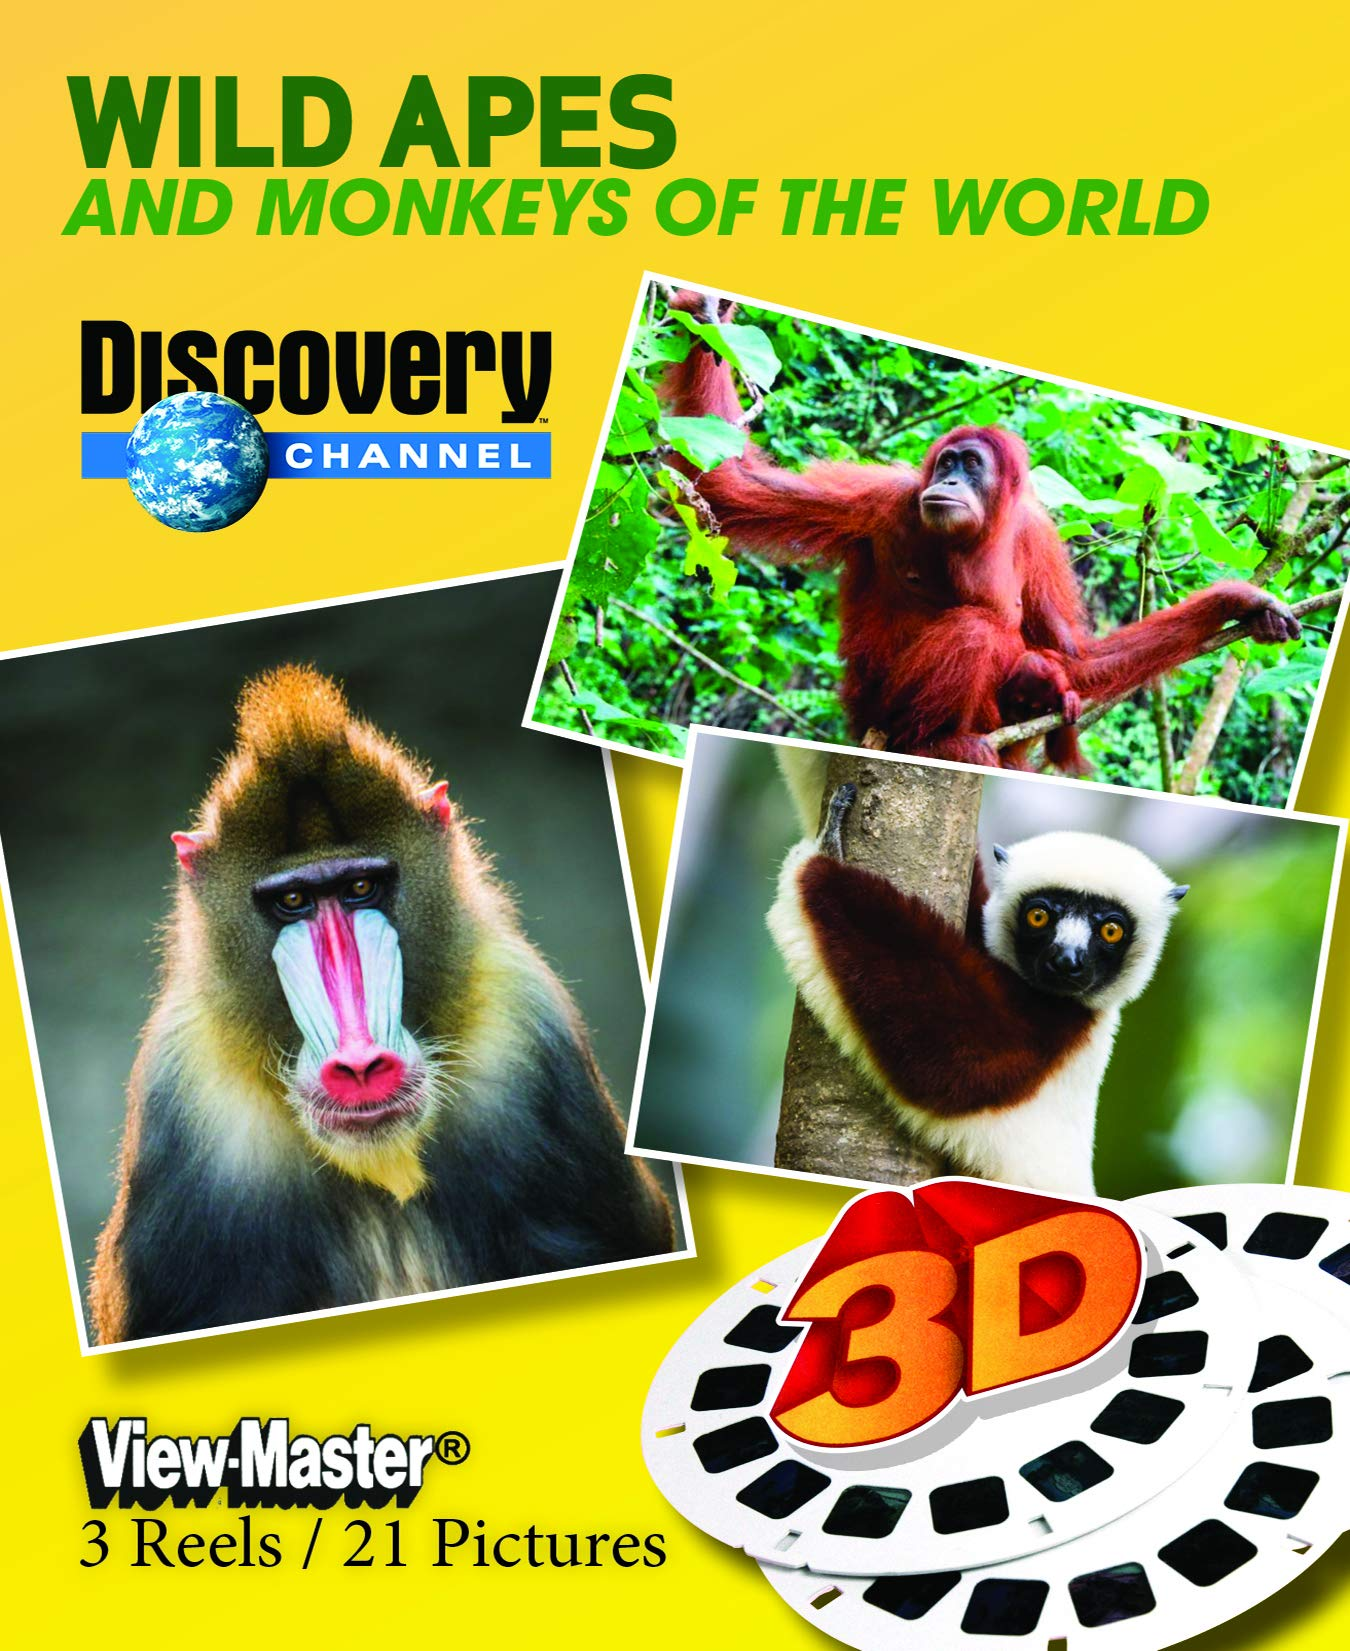 Discovery Channel - Amazing Primates - Classic ViewMaster - 3 Reels on Card - NEW by 3Dstereo ViewMaster